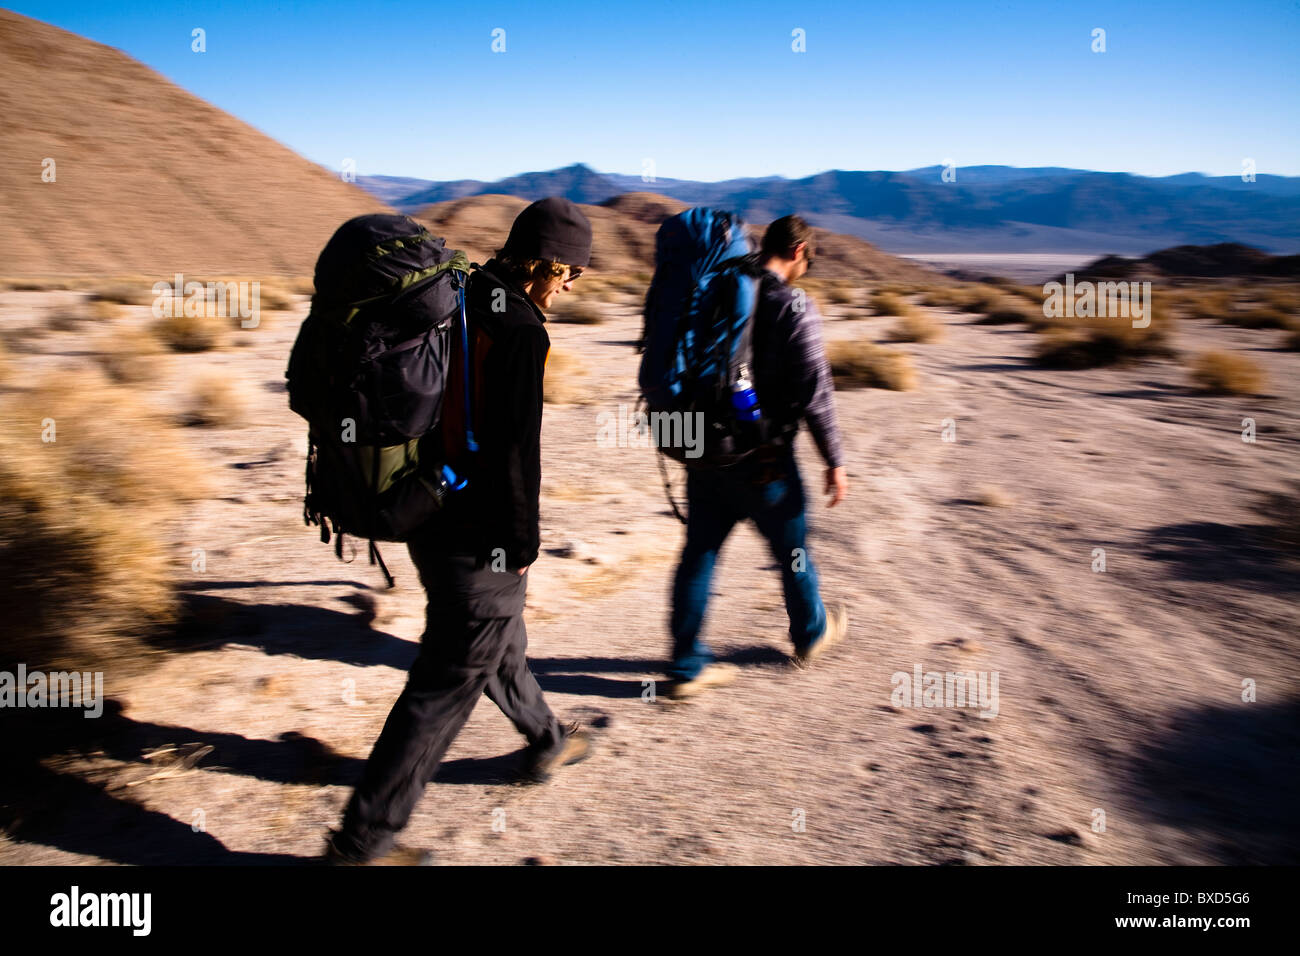 A pair of young male hikers backpack through Death Valley's Confidence Hills, California. - Stock Image